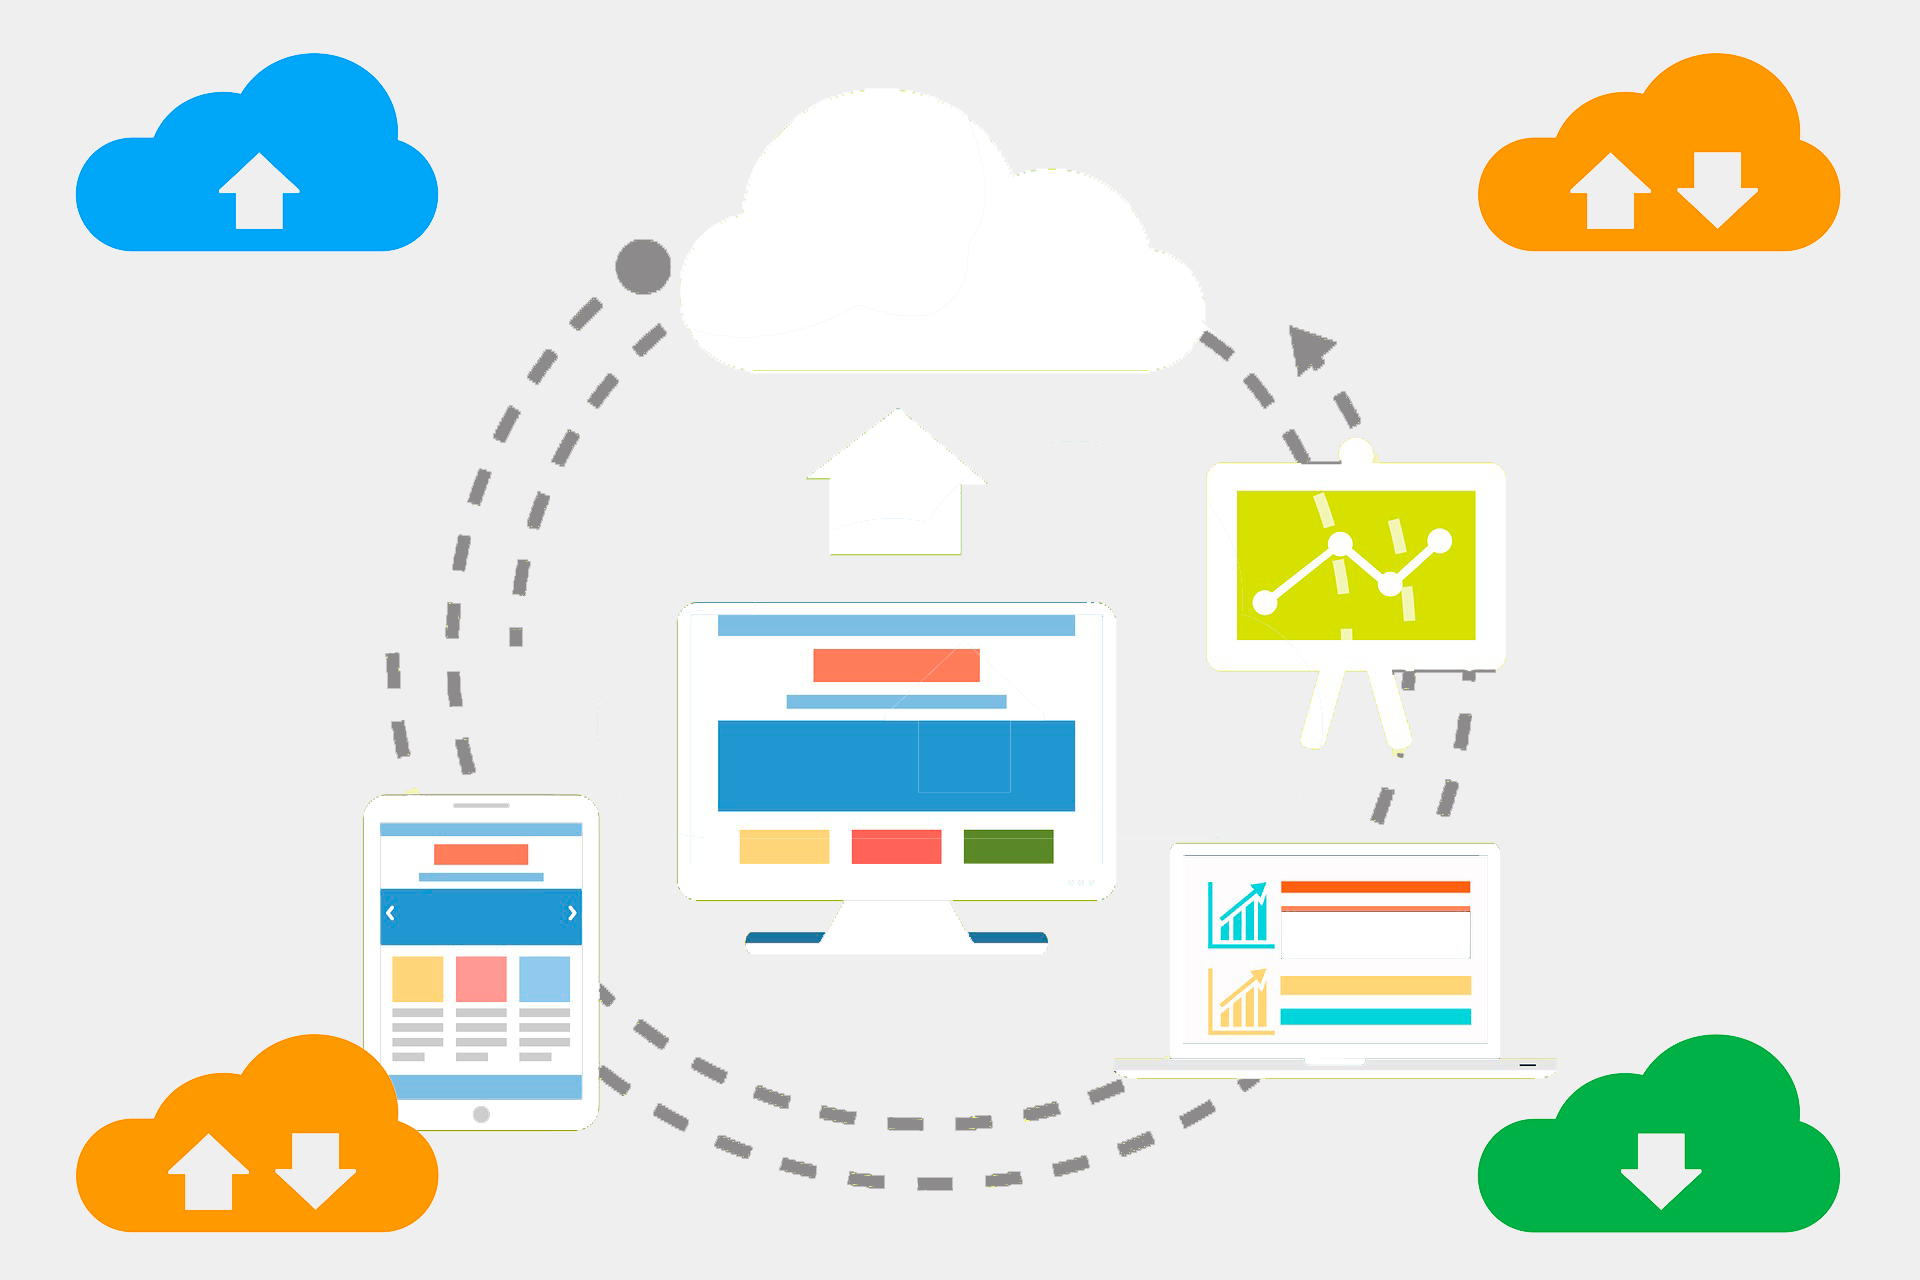 Why do you need cloud storage?